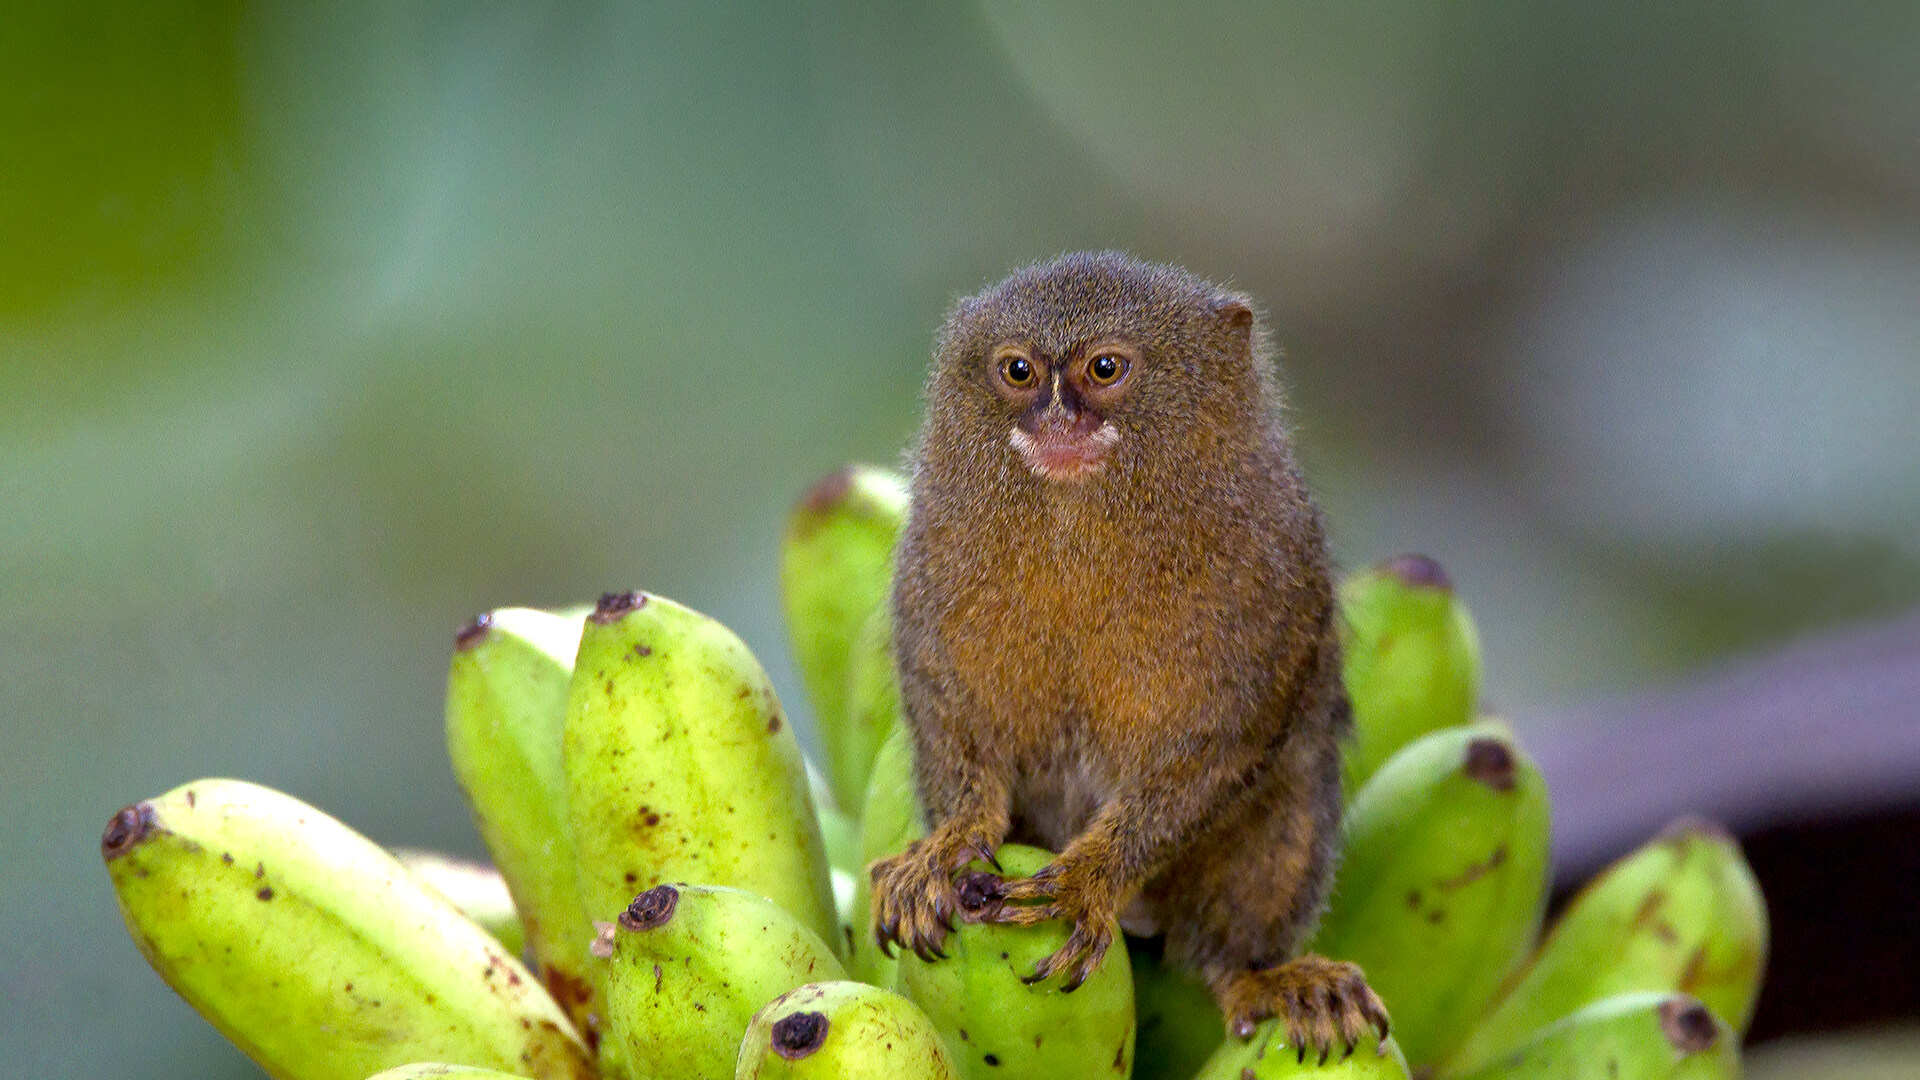 Pygmy marmoset sits on a bunch of bananas